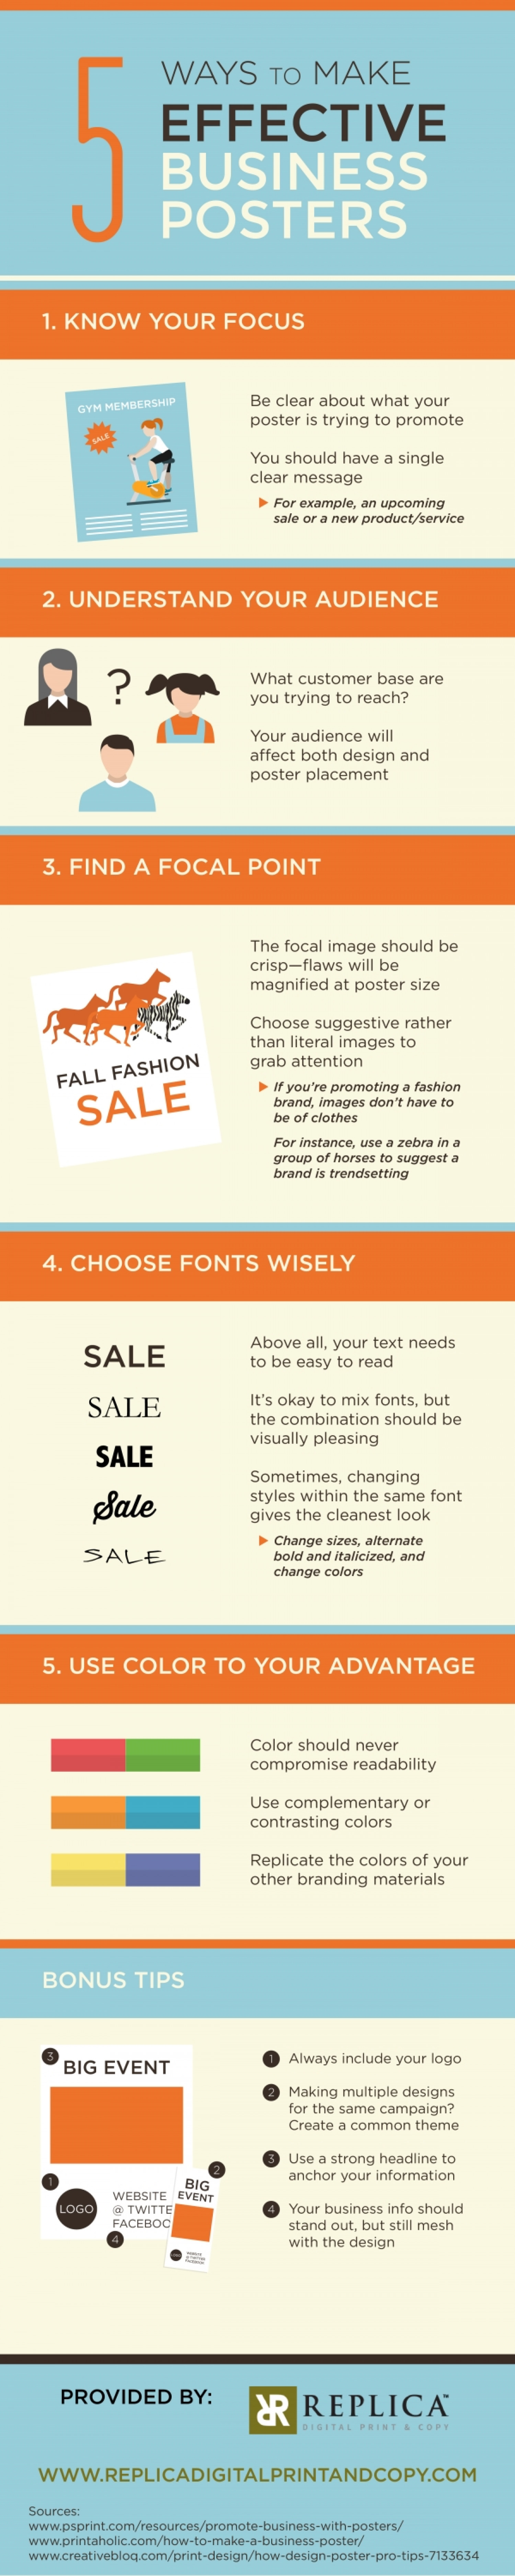 5 Ways to Make Effective Business Posters Infographic